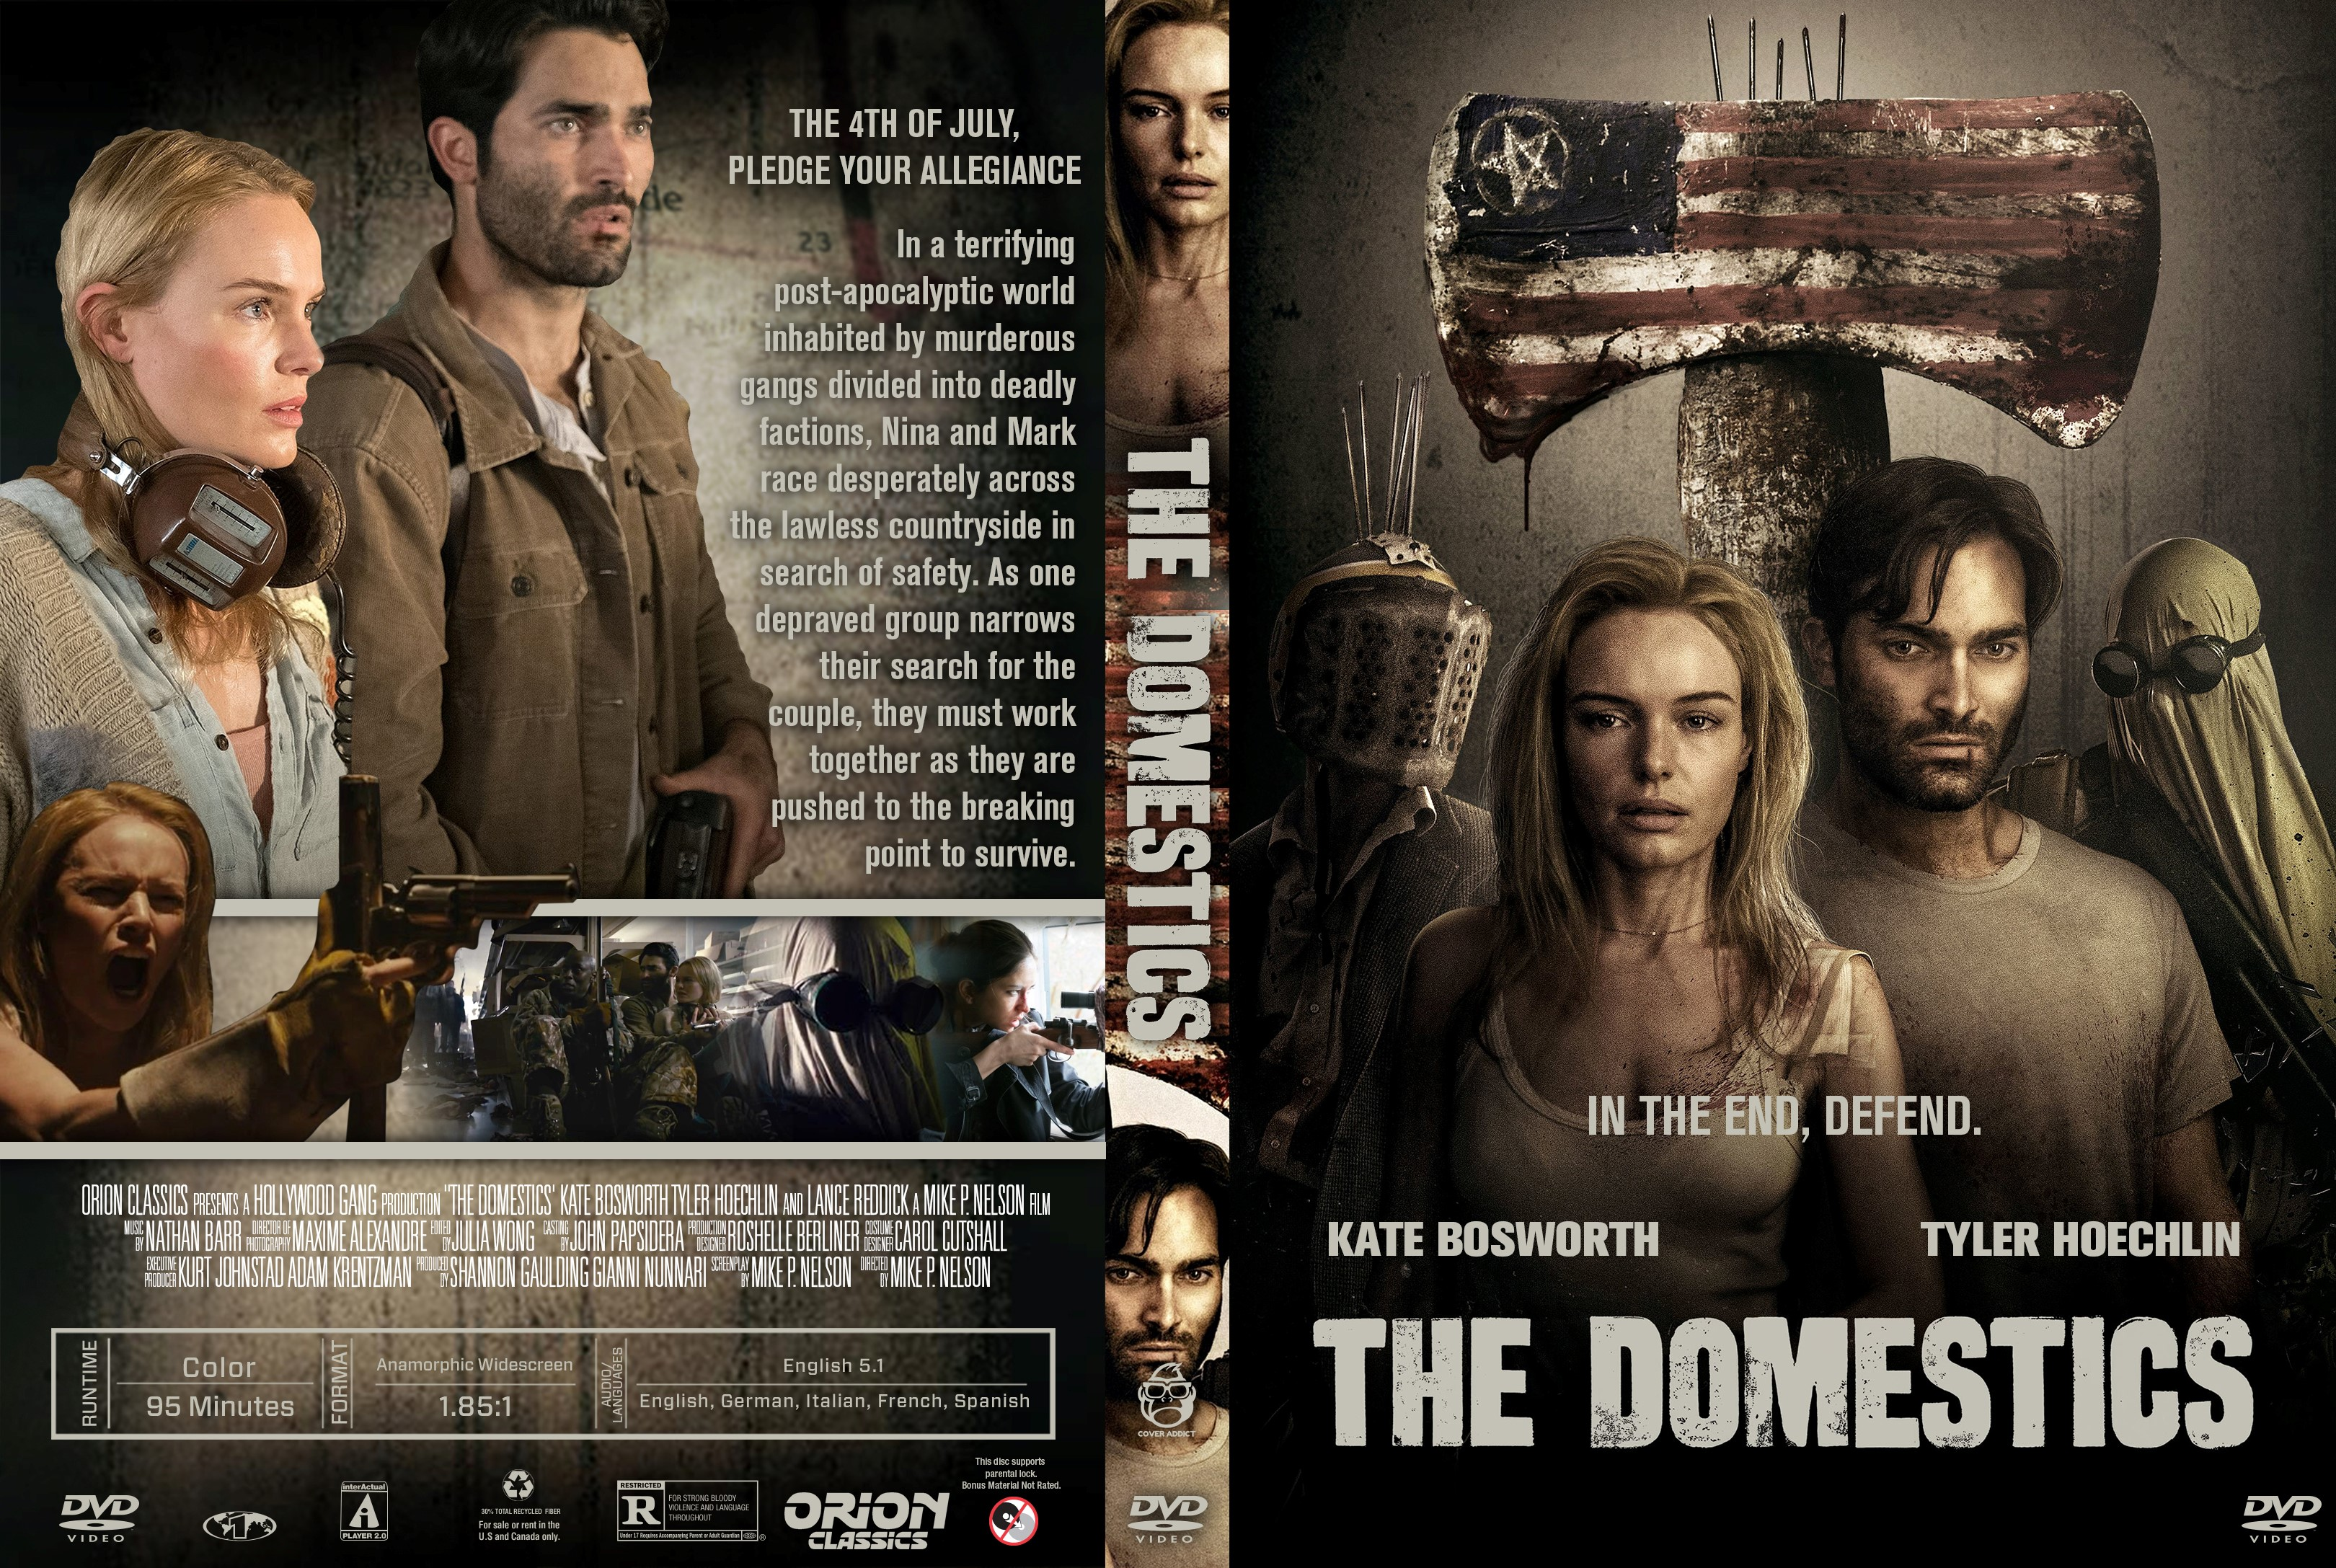 The Domestics Film